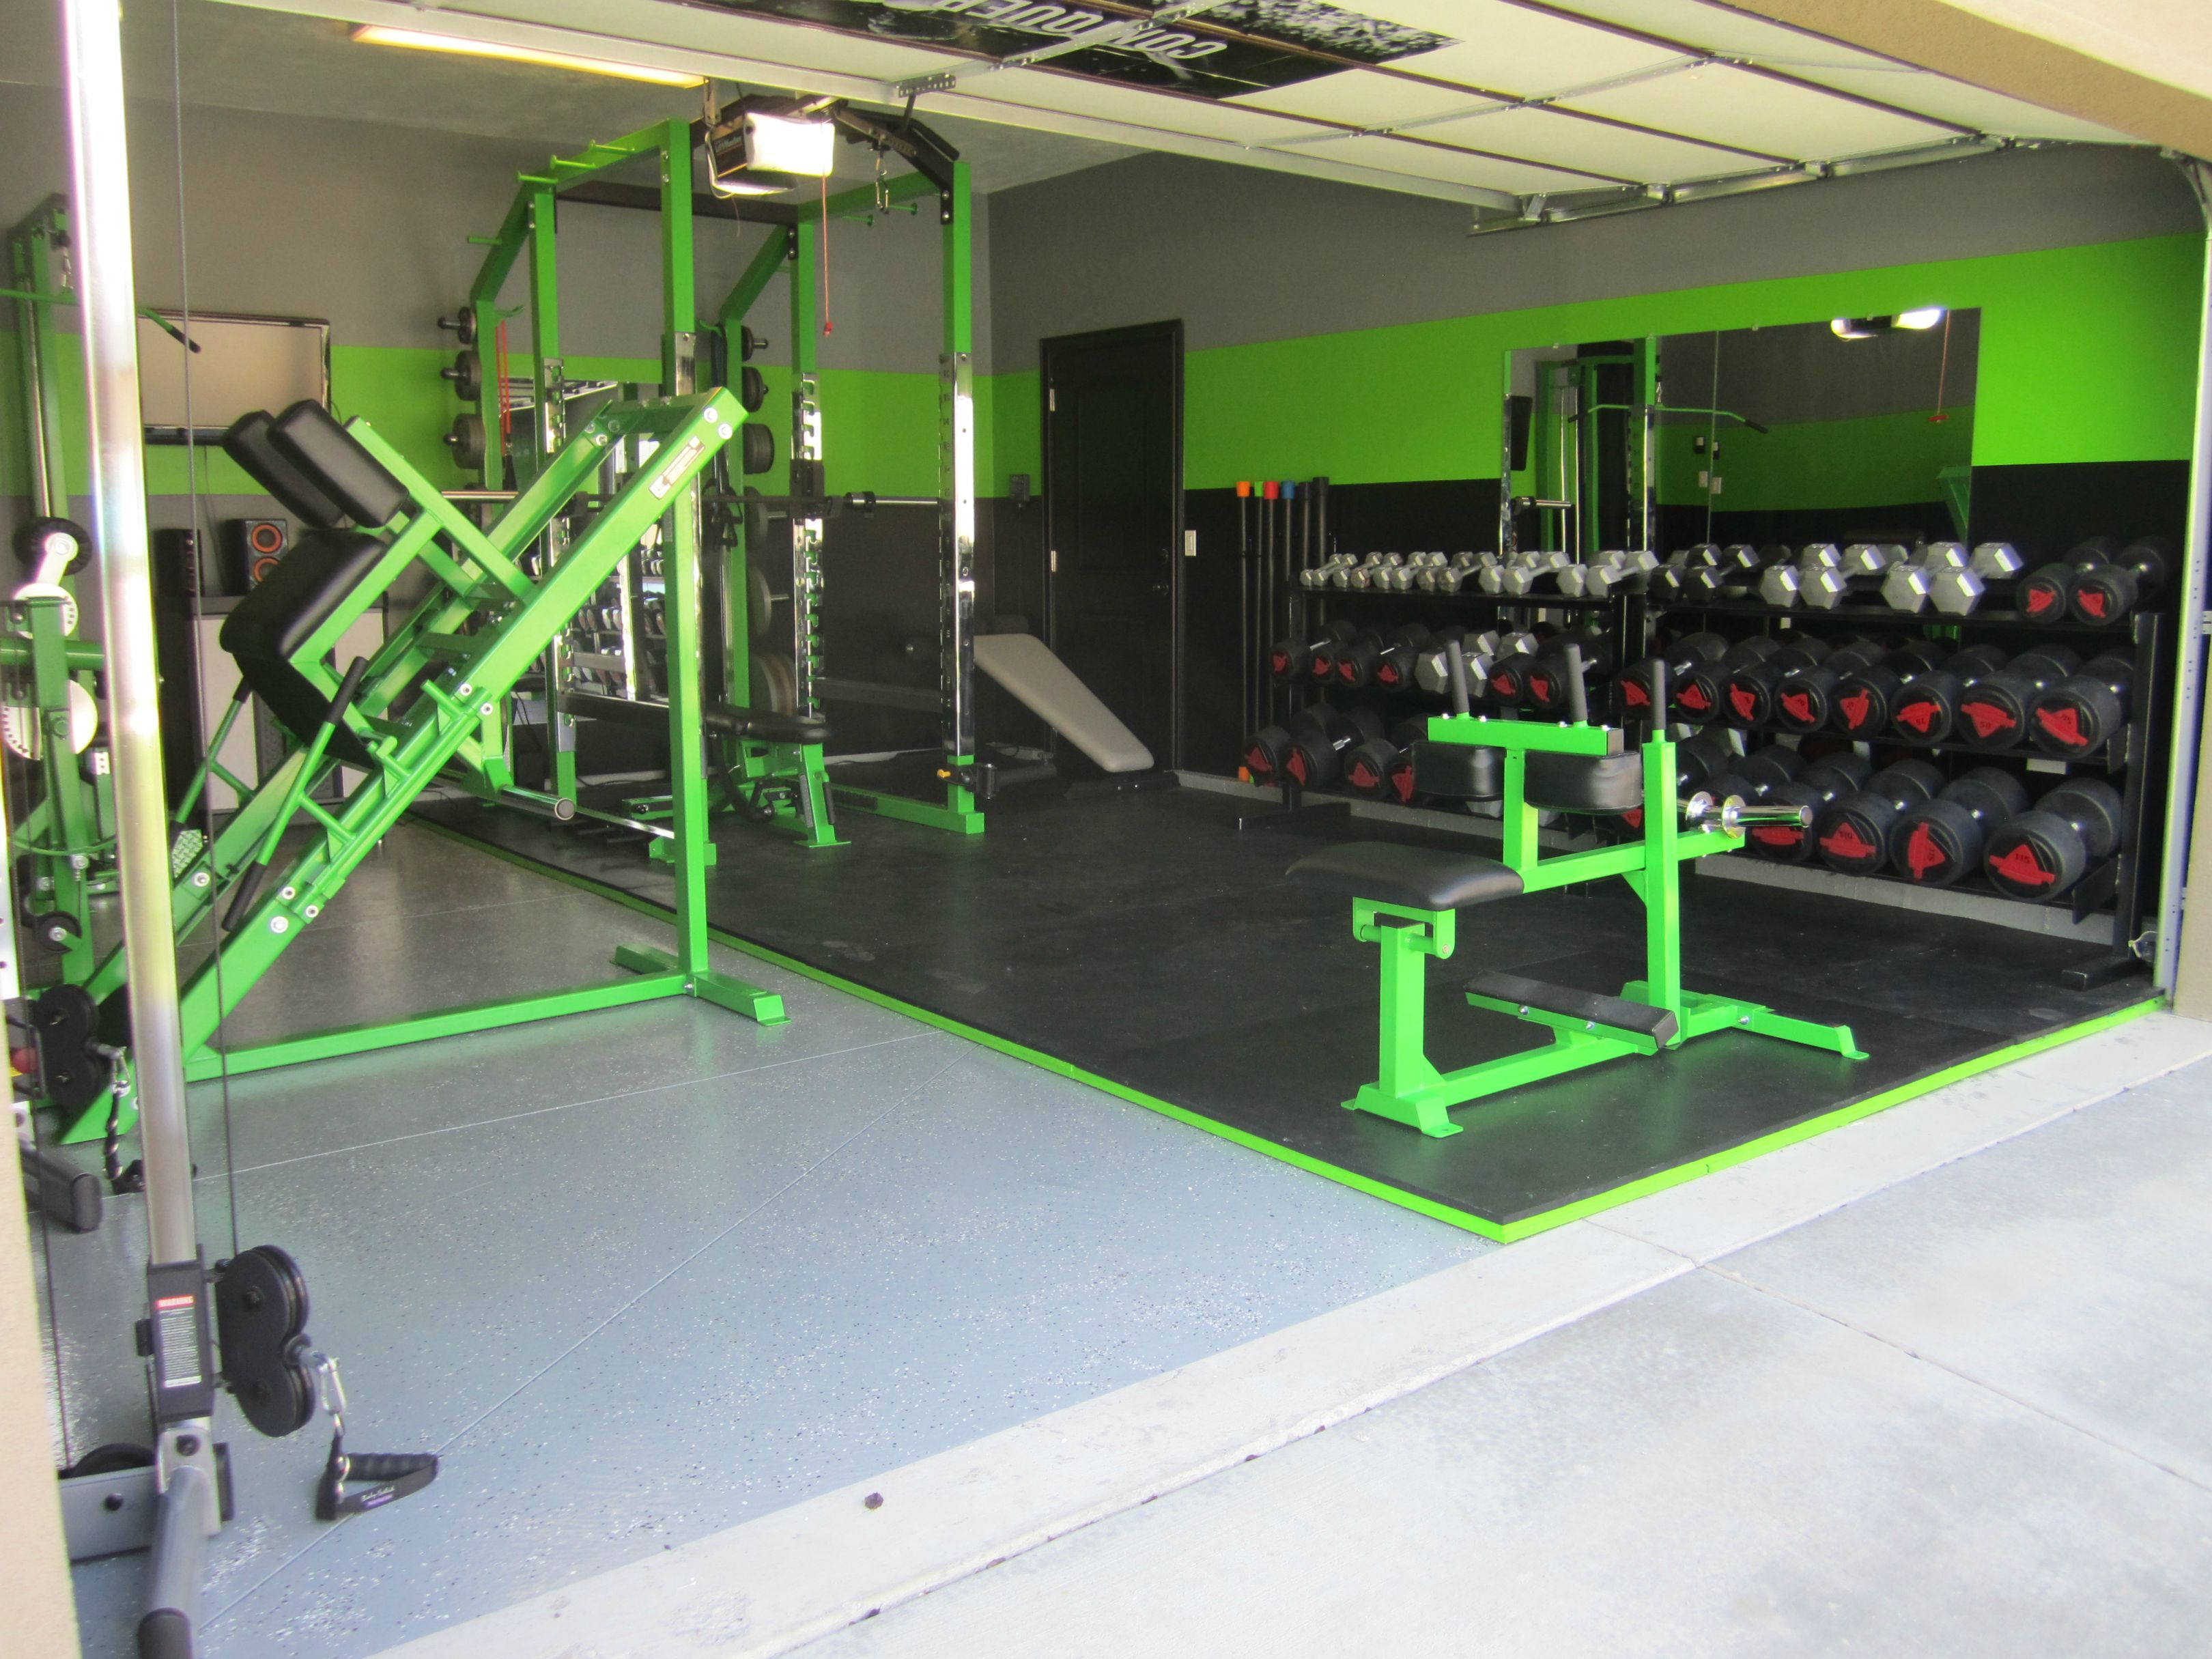 Awesome Home Garage Gym Just For The Health Of It